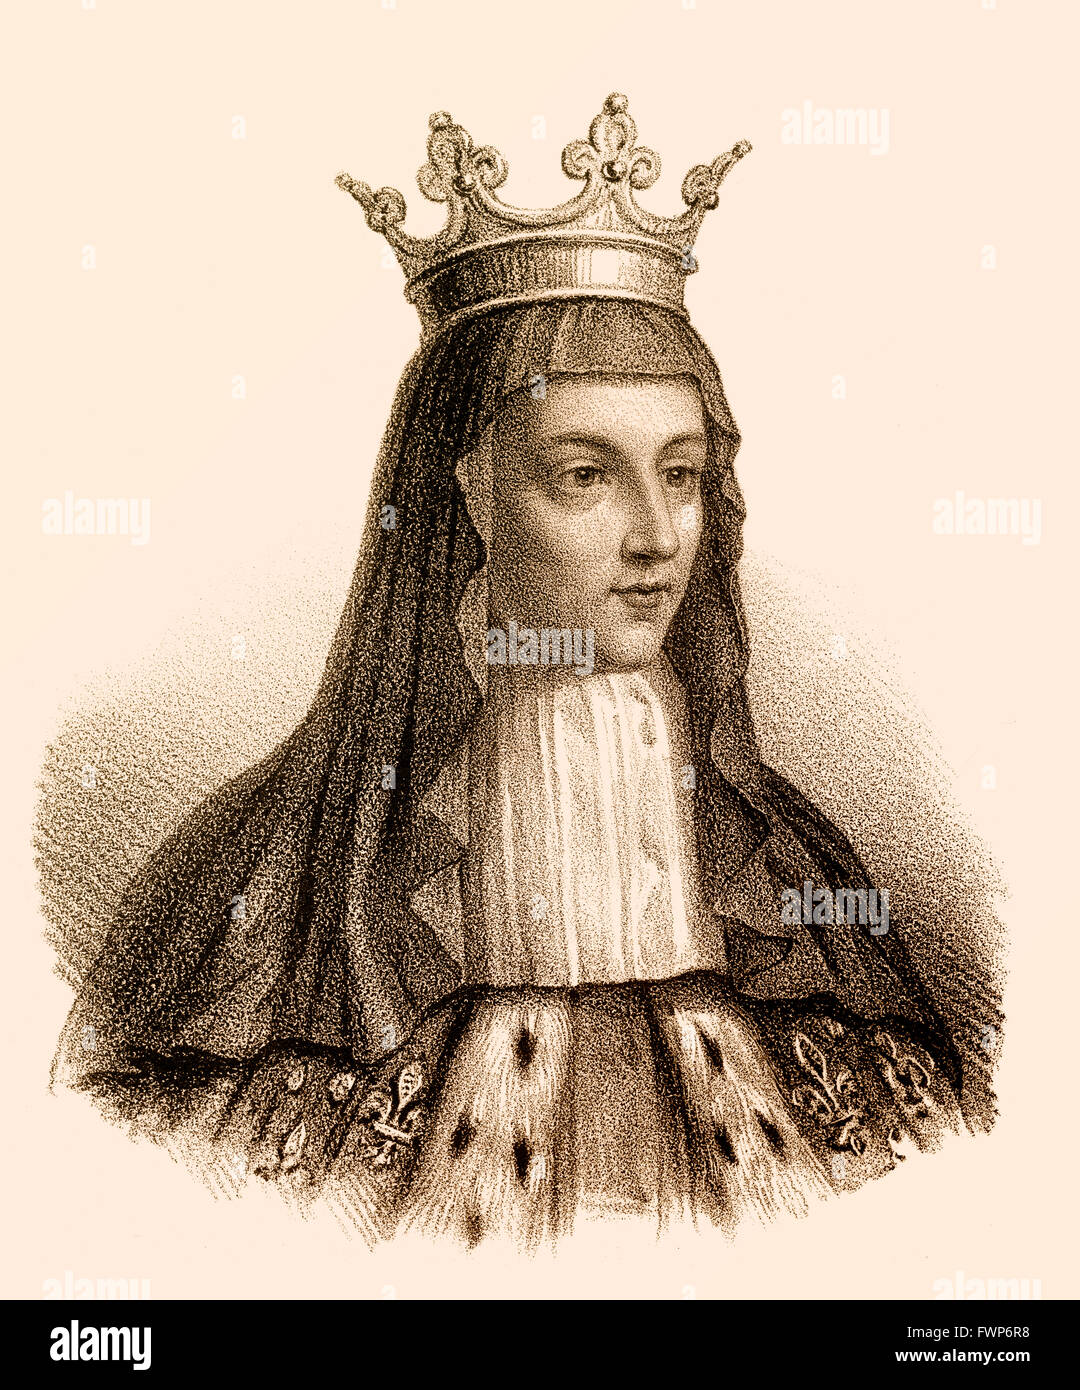 Radegund or Radegonde, wife to Chlothar I, Chlotachar or Clotaire, c. 495- 561, called the Old, King of the Franks of the Merovi Stock Photo